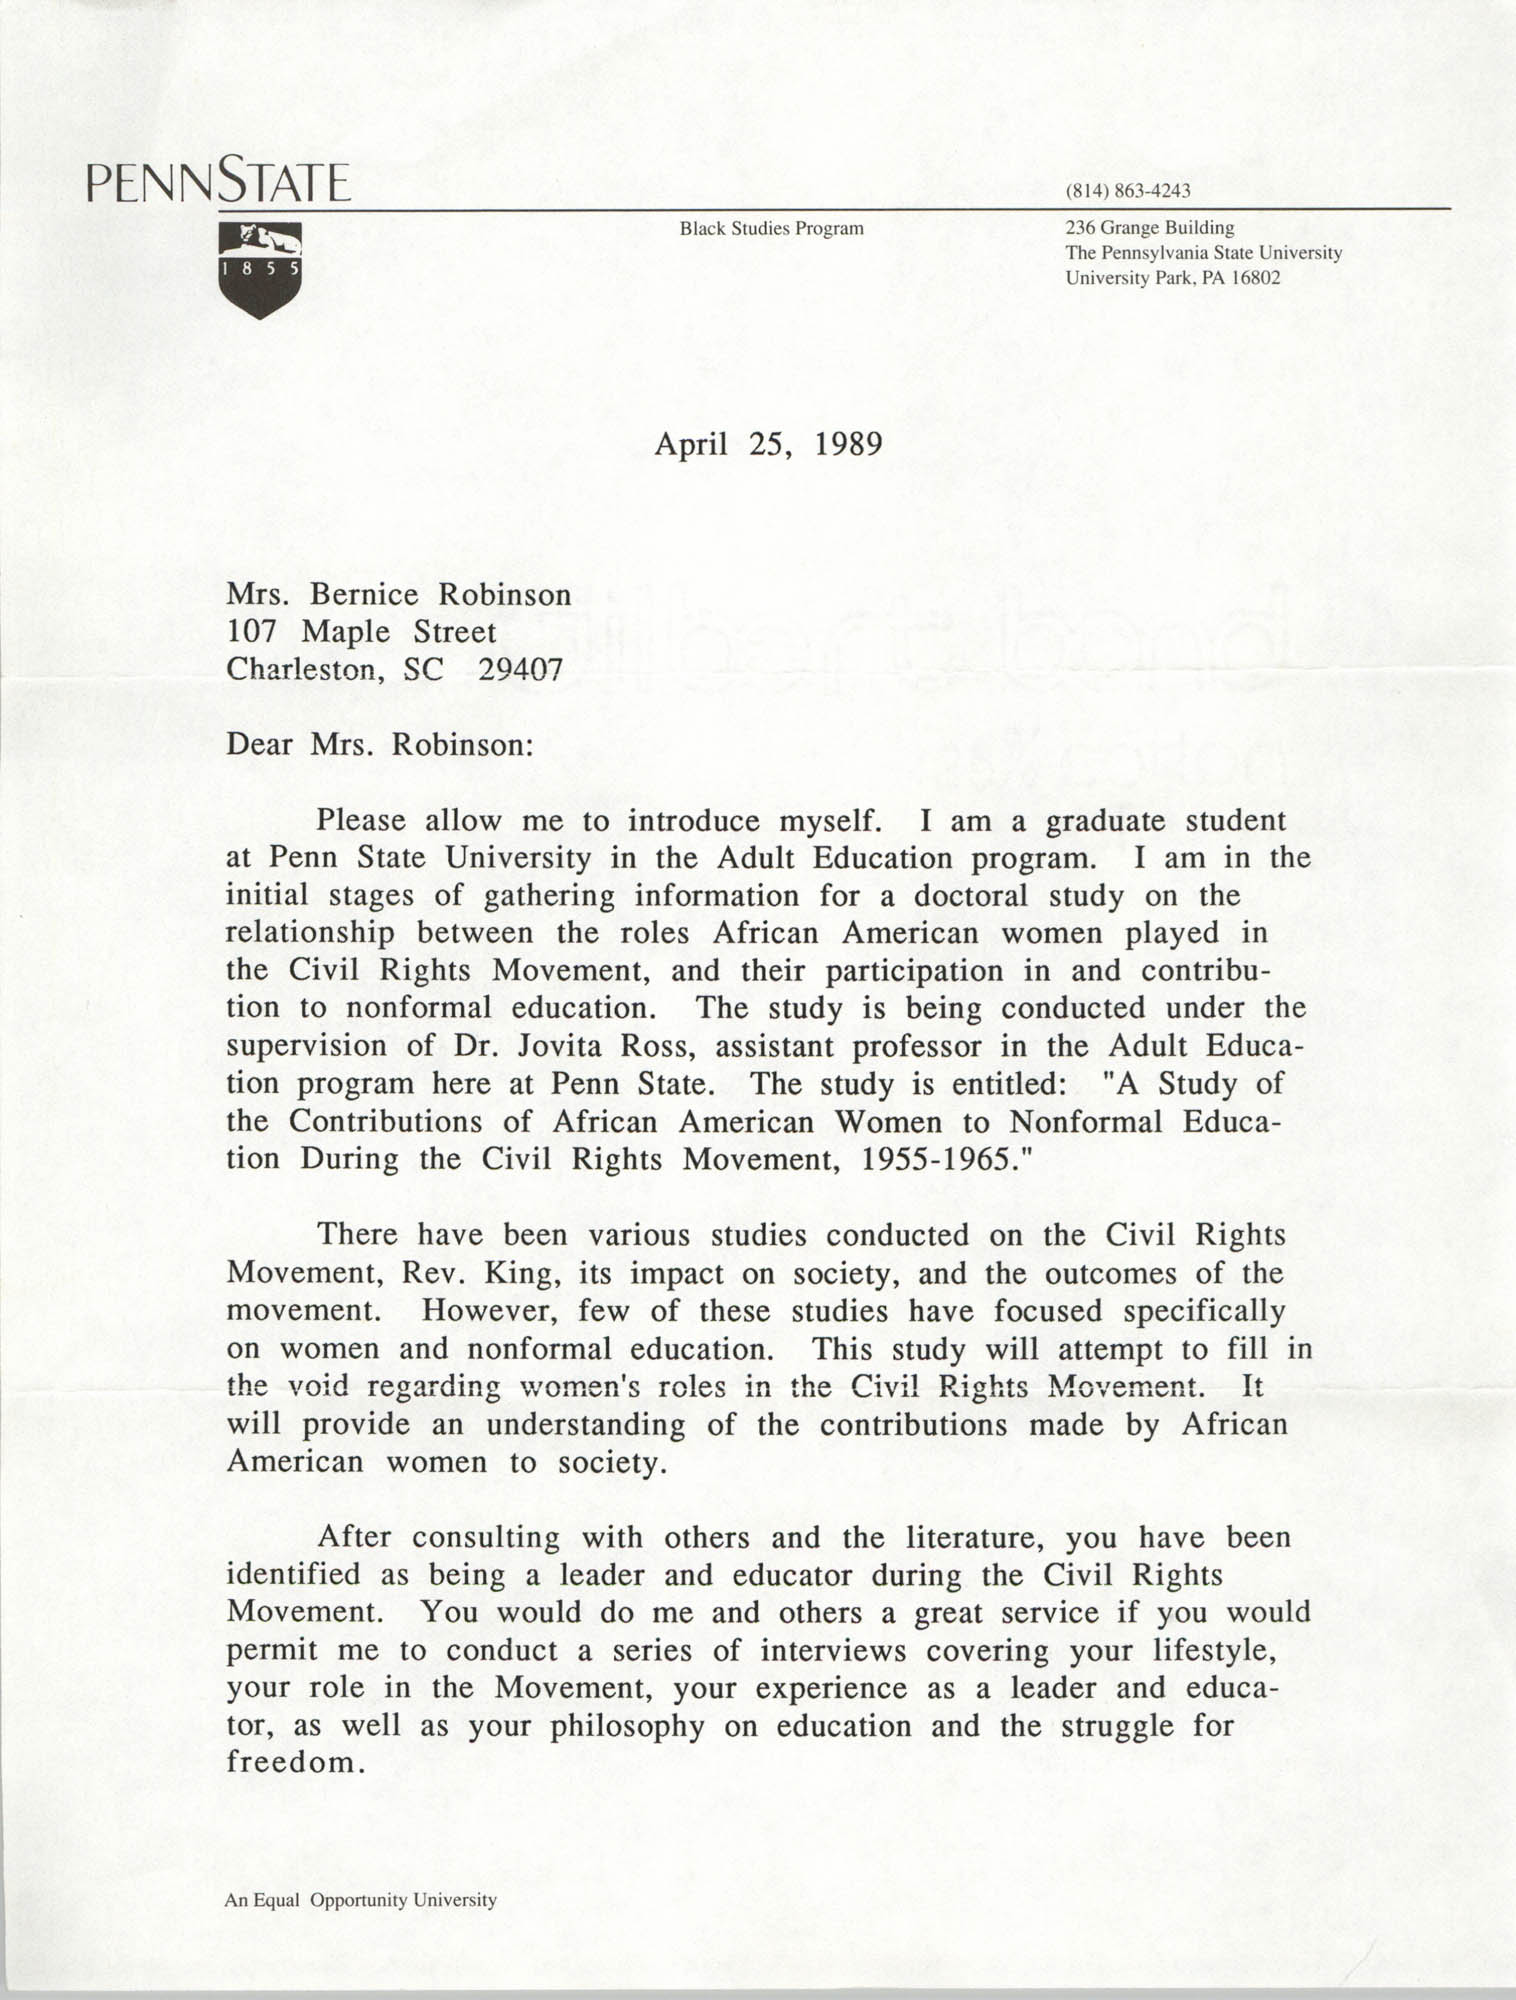 Letter from LaVerne Gyant to Bernice Robinson, April 25, 1989